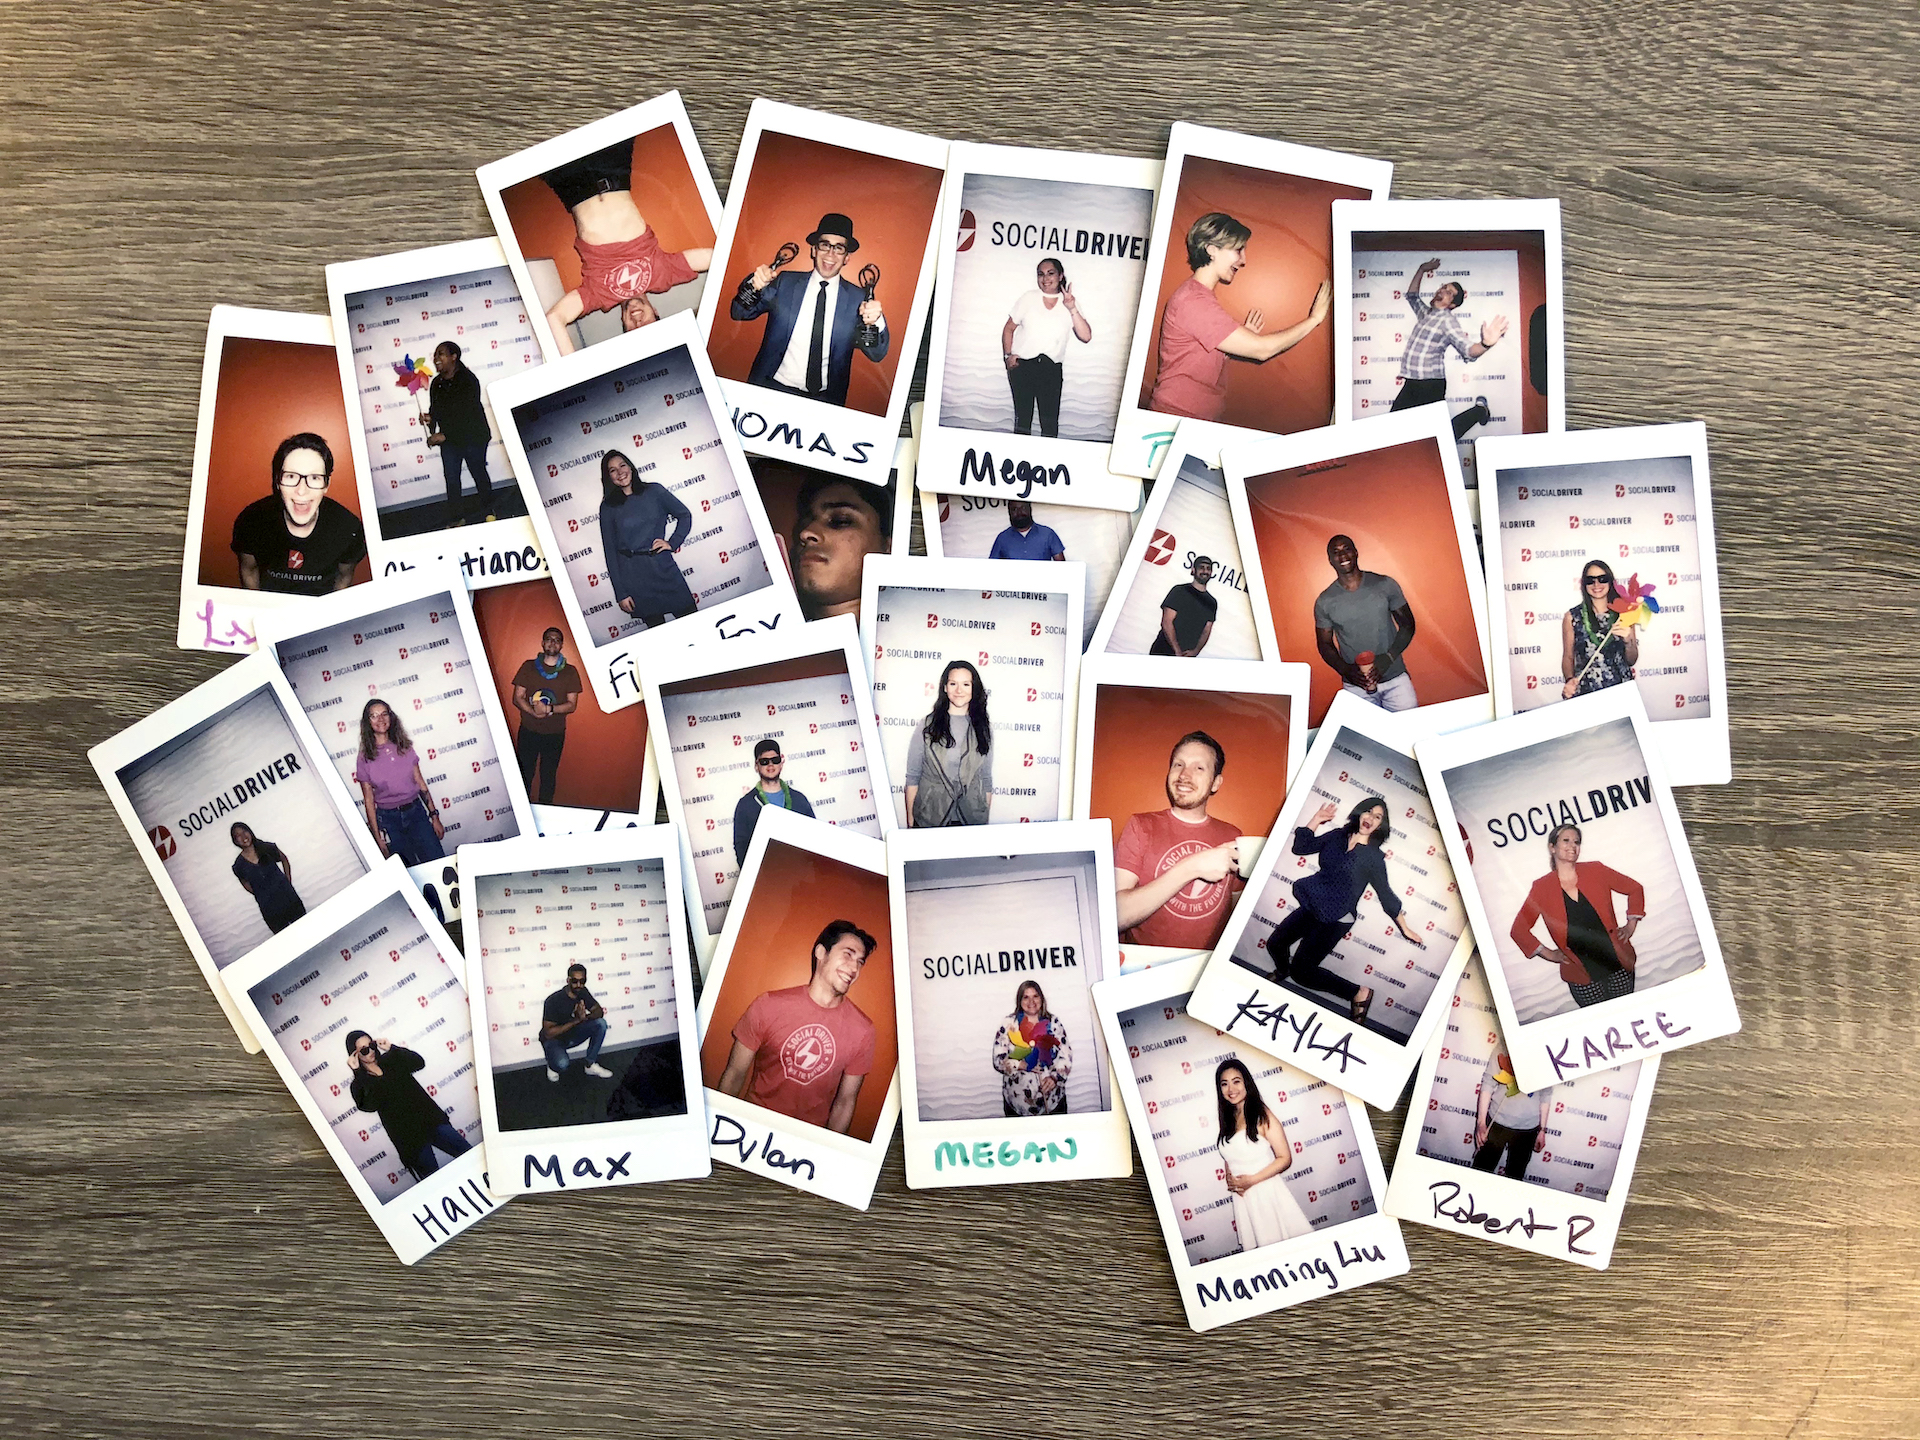 A collection of Social Driver employee Polaroids arranged on a gray wood table.